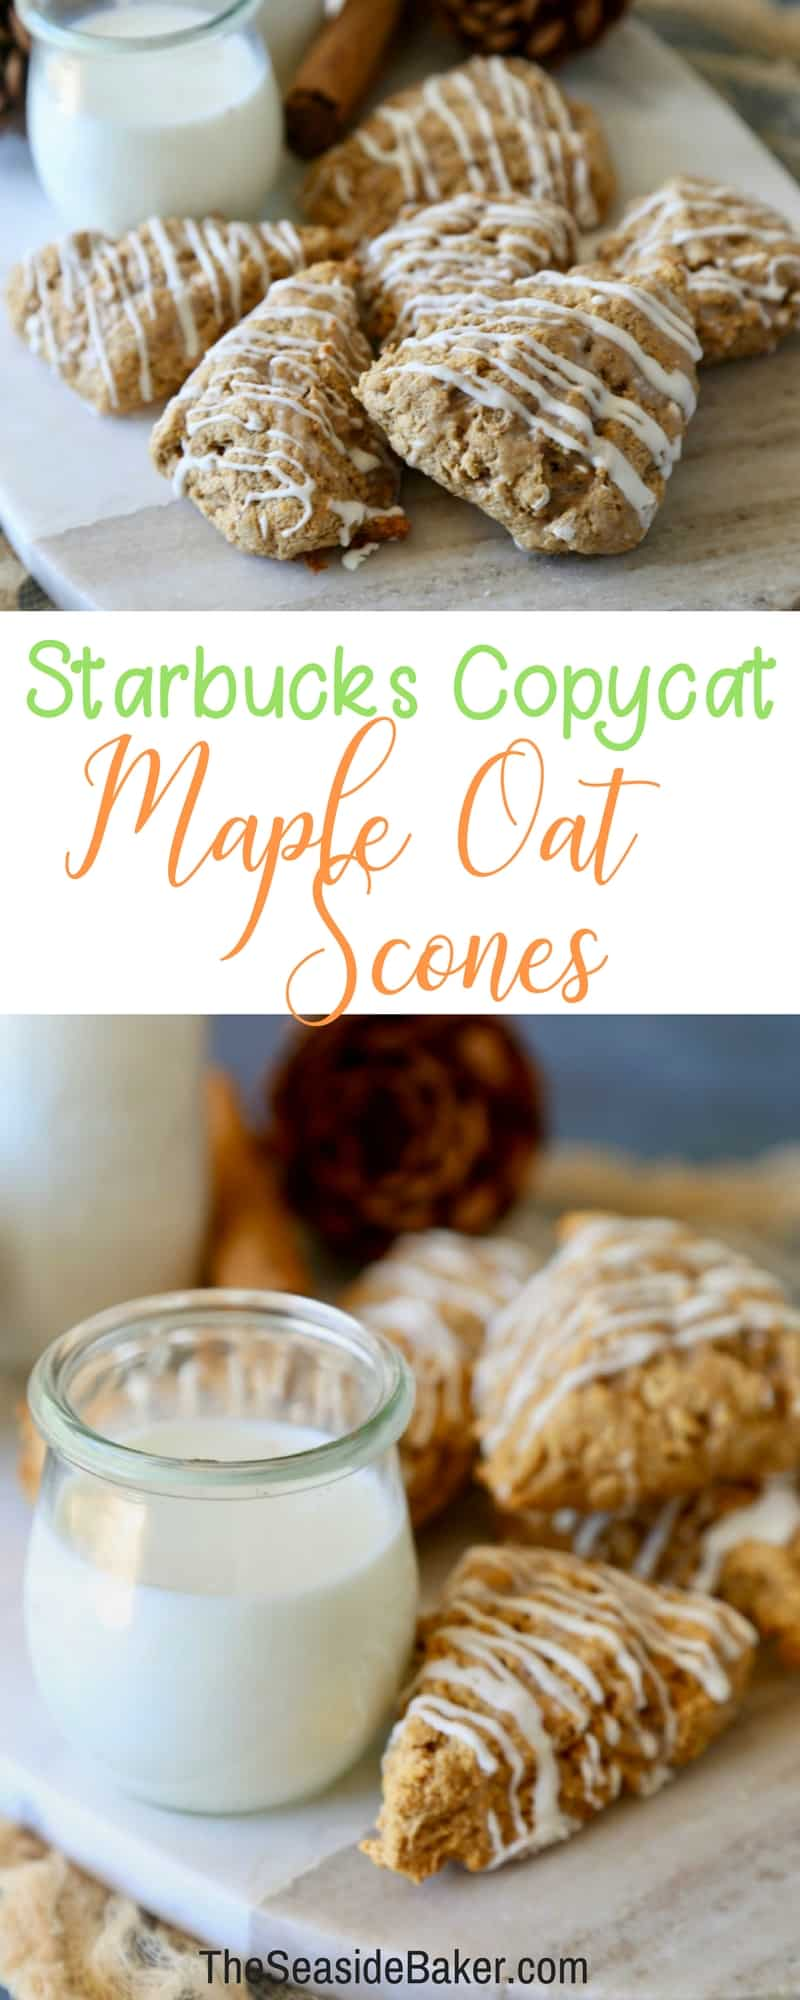 Delicious Maple Oat Scones just like the ones you buy at Starbucks!